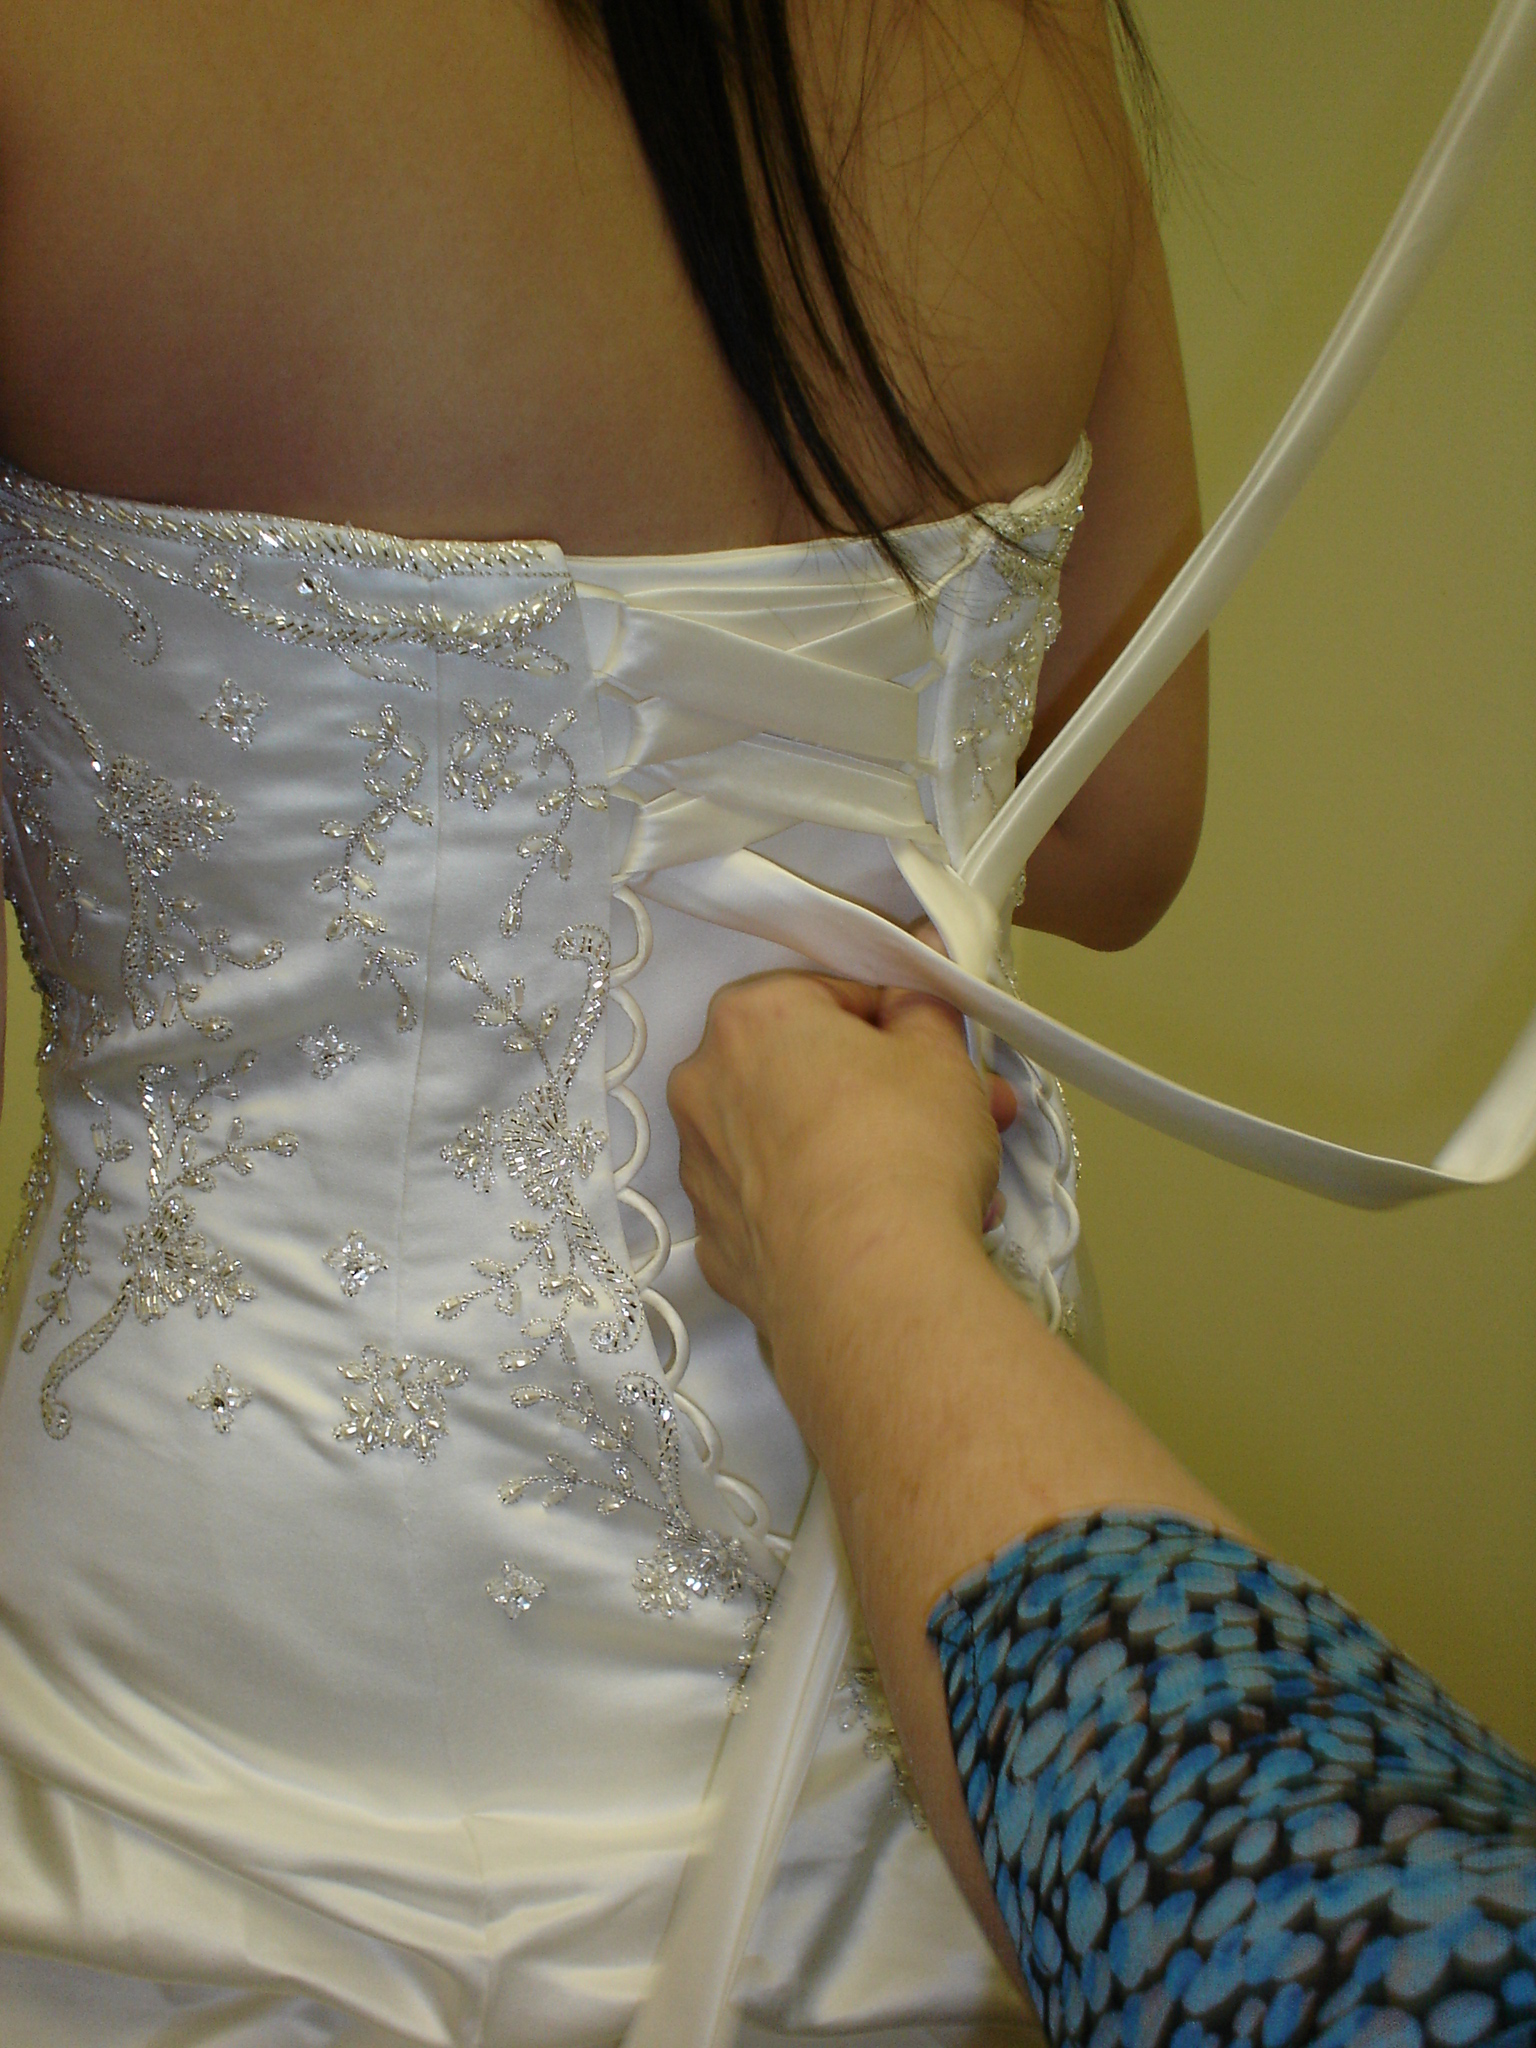 The seamstress showing me how to tie the corset.